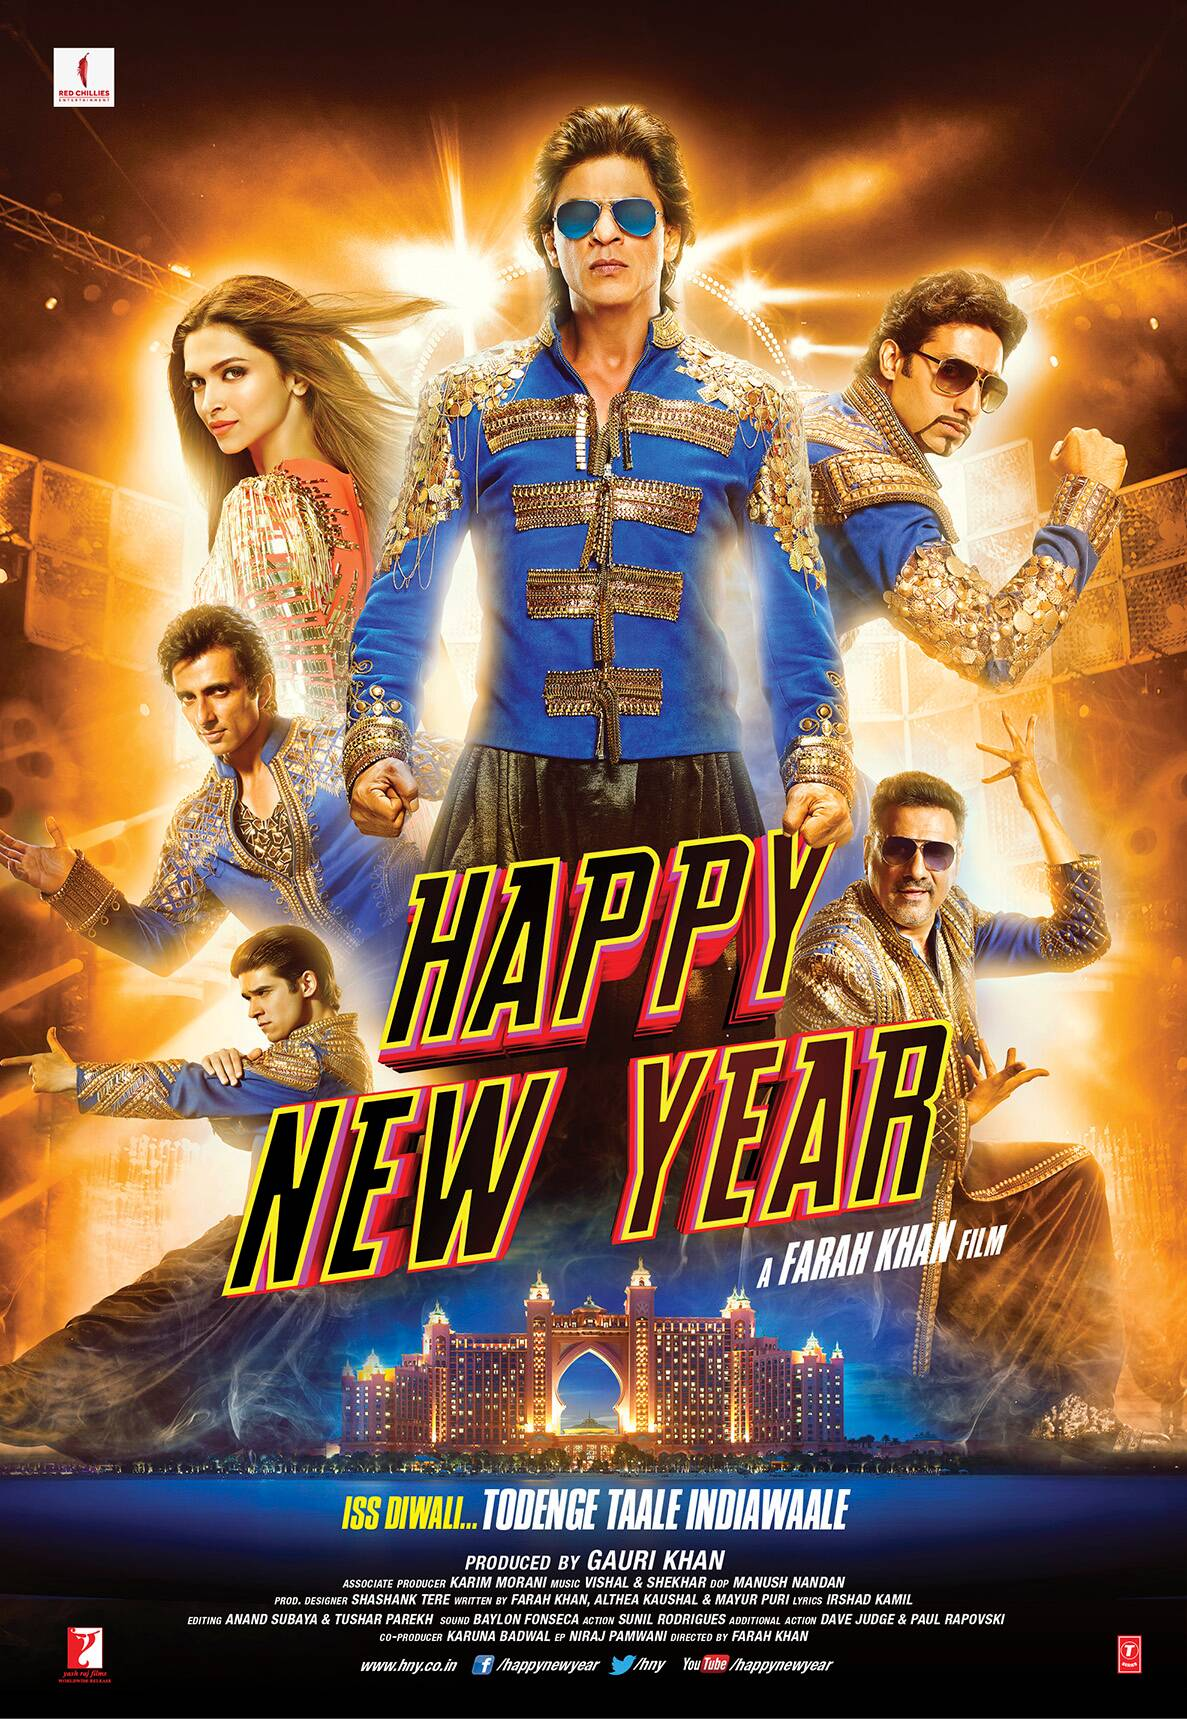 The new poster of Farah Khan's Happy New Year' is out with the film's cast dressed in suits of gold with blue. While the actors  - Shah Rukh Khan, Abhishek Bachchan, Sonu Sood, Boman Irani and Vivaan Shah look deadly, lead actress Deepika Padukone sizzles in a gold and orange outfit.